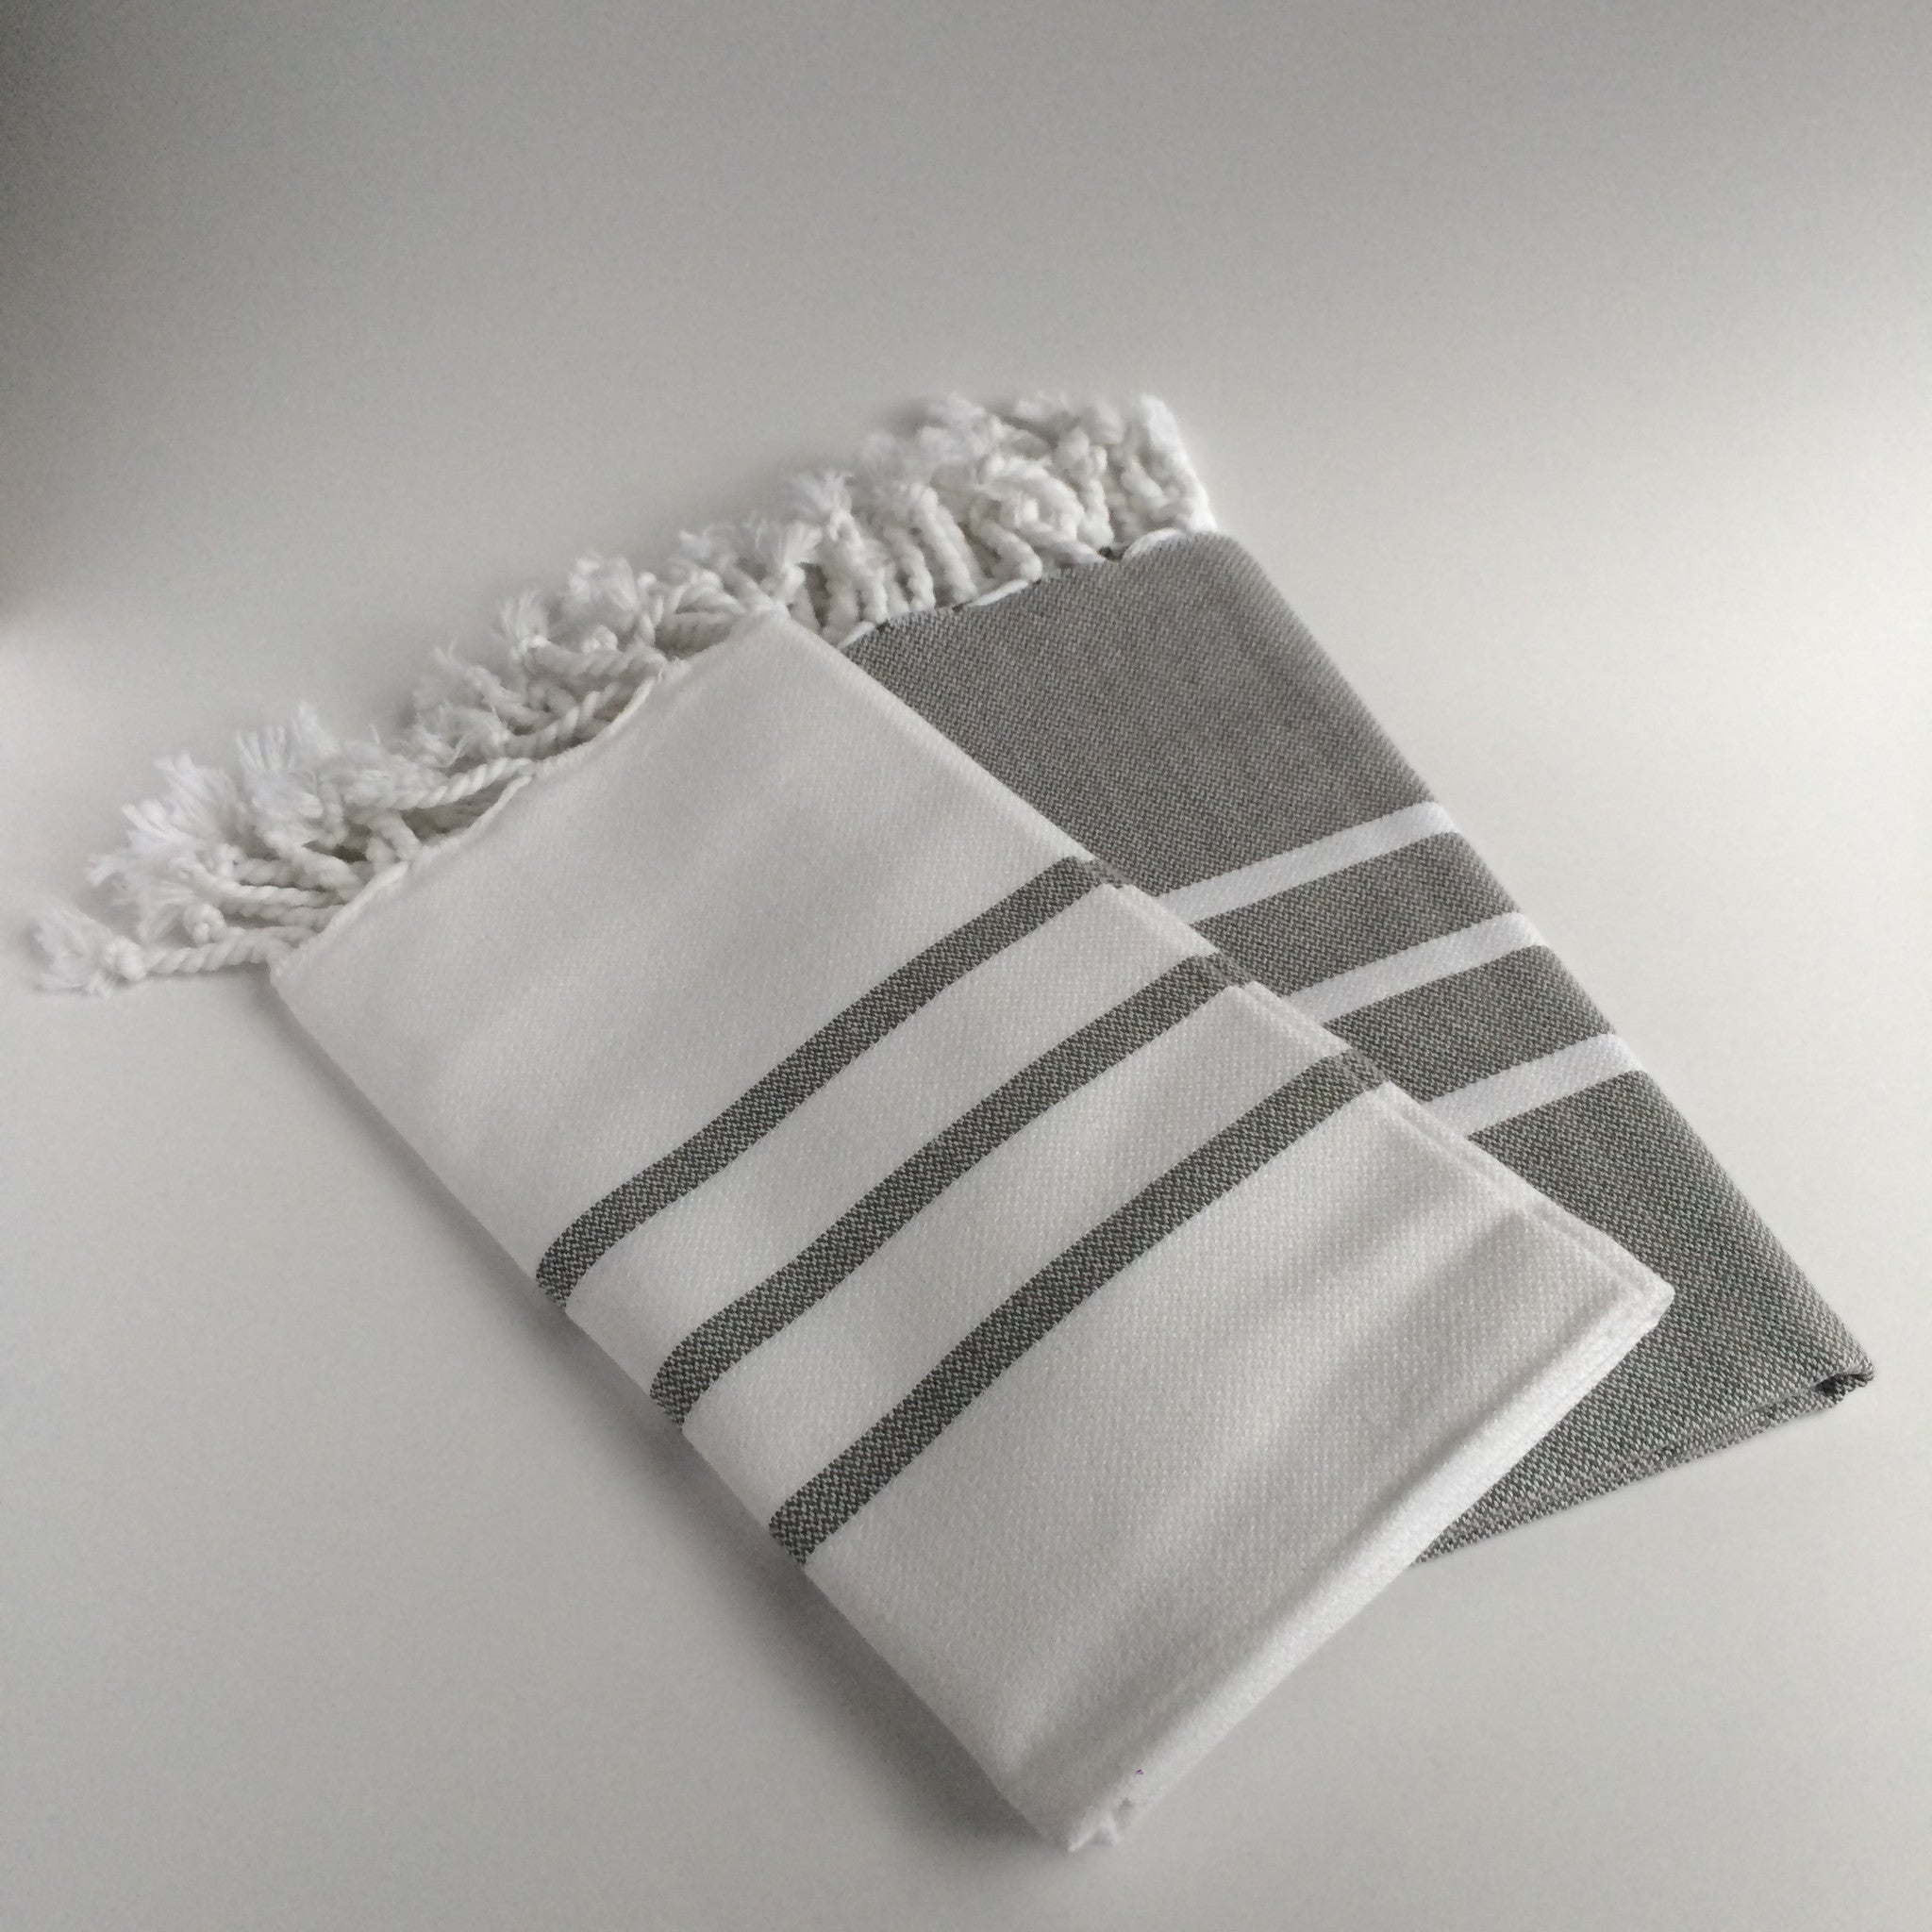 3 Stripe Turkish Cotton Hand Towel Peshtemal 20x40 Set Of 2 Tudor Way